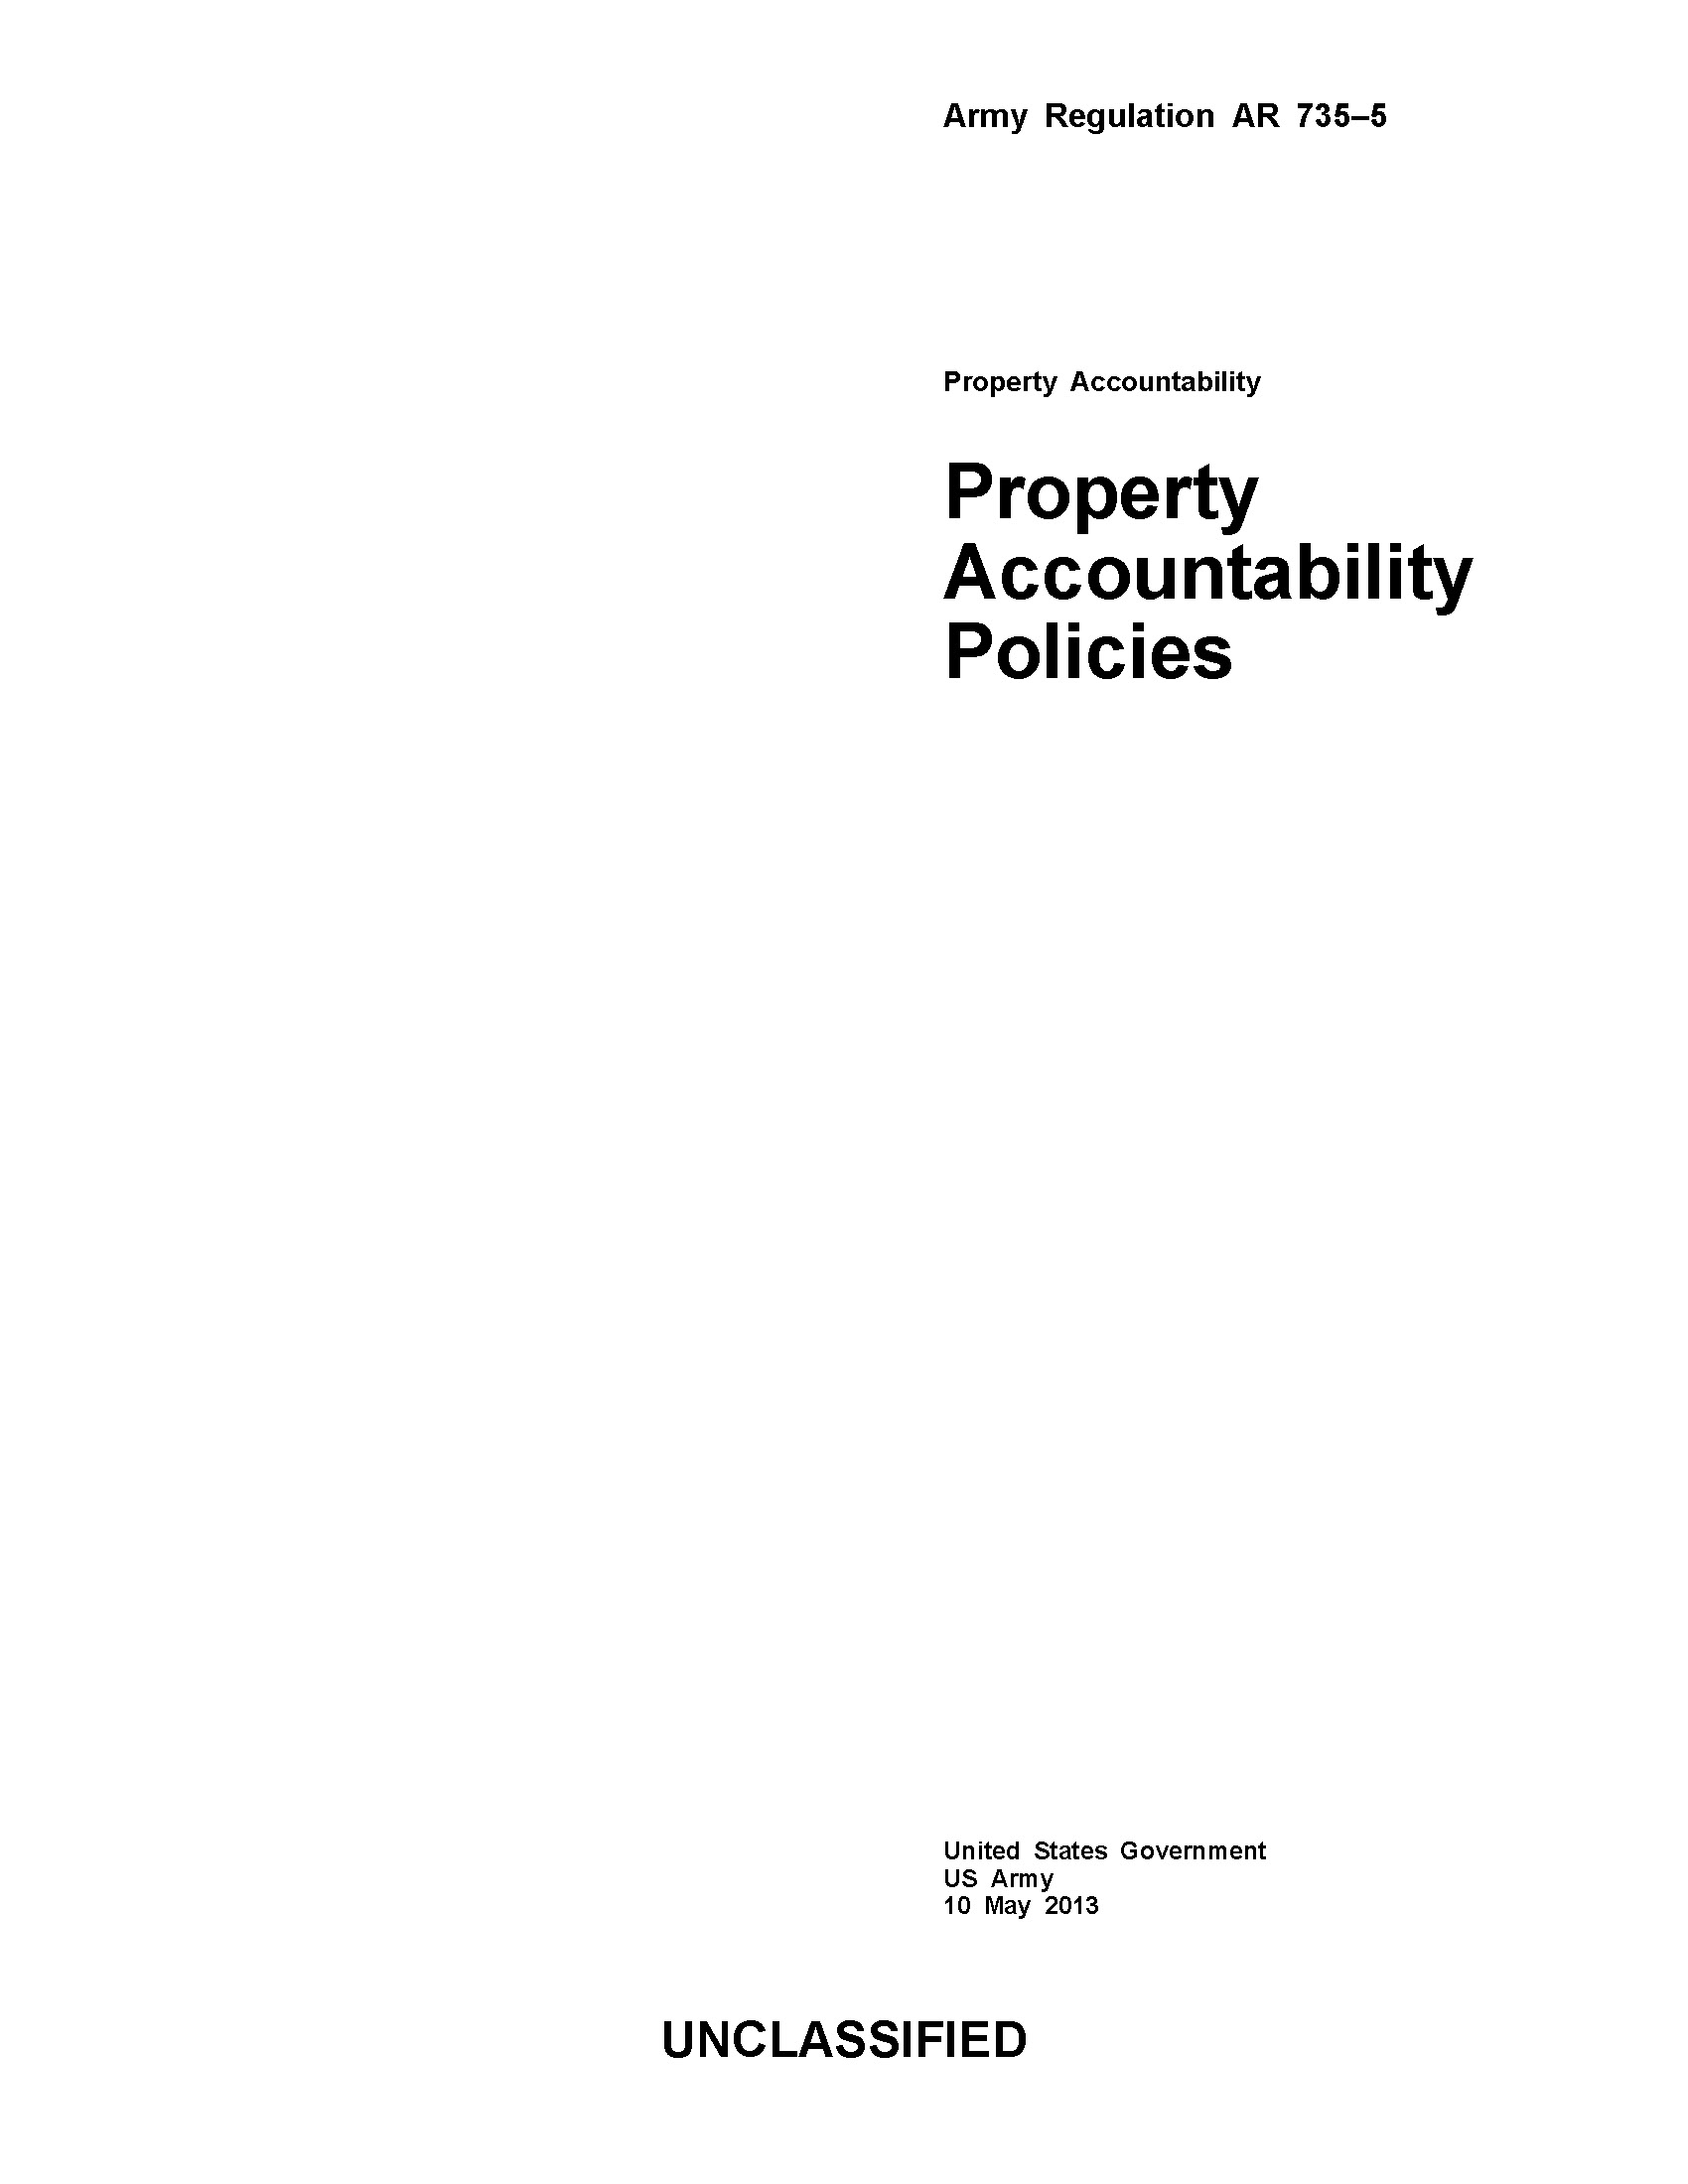 Army Regulation AR 735-5 Property Accountability Policies 10 May 2013